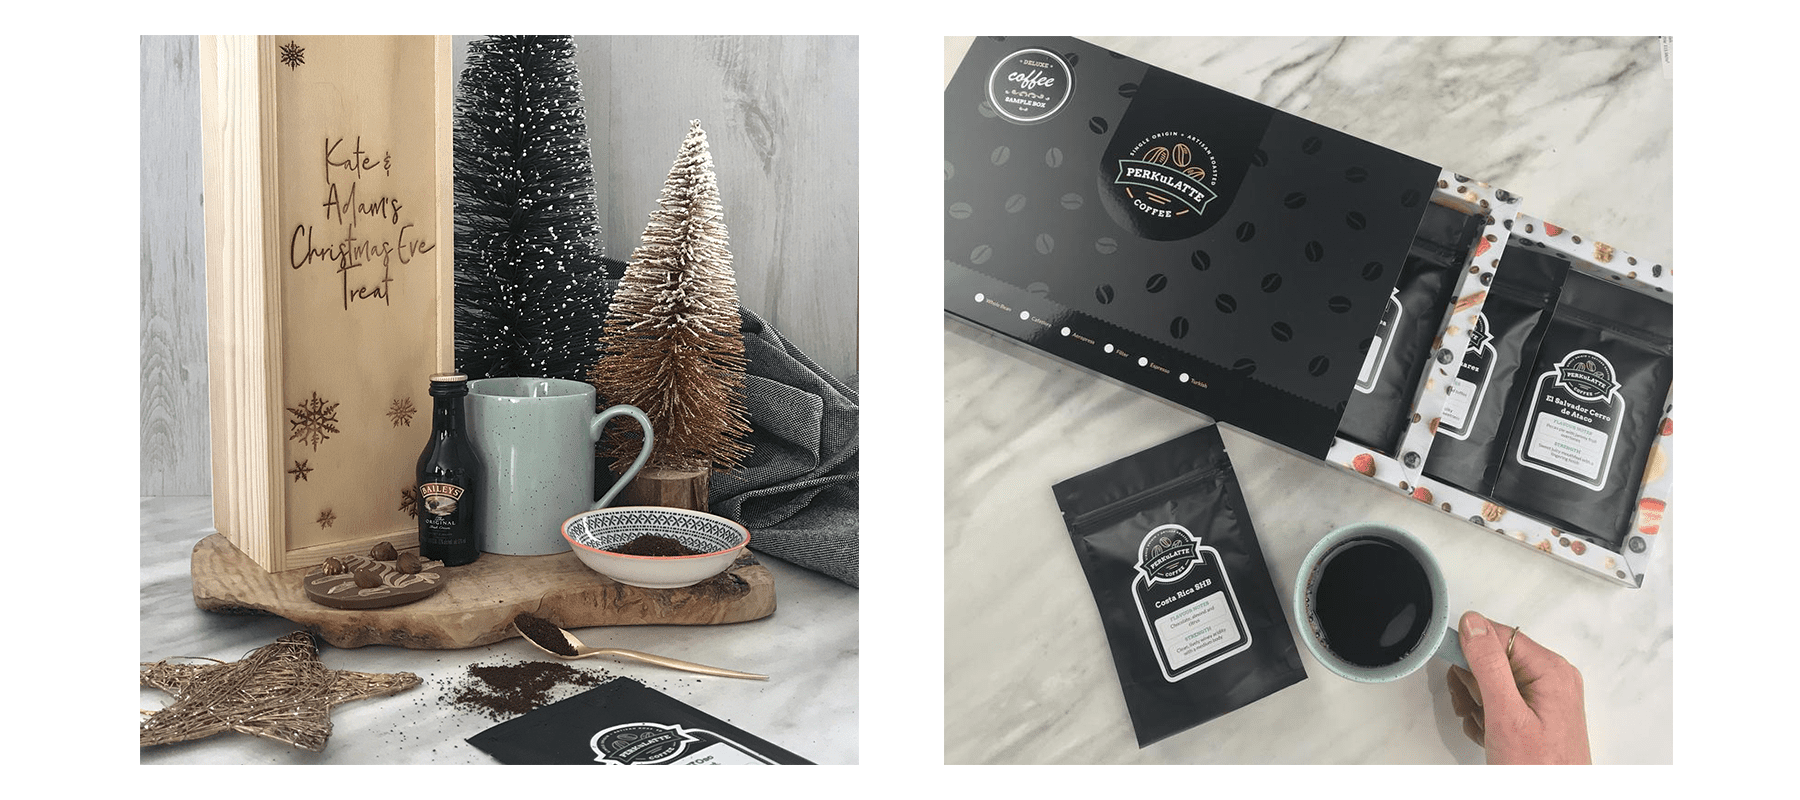 Small Business Gift Guide - Food & Drink